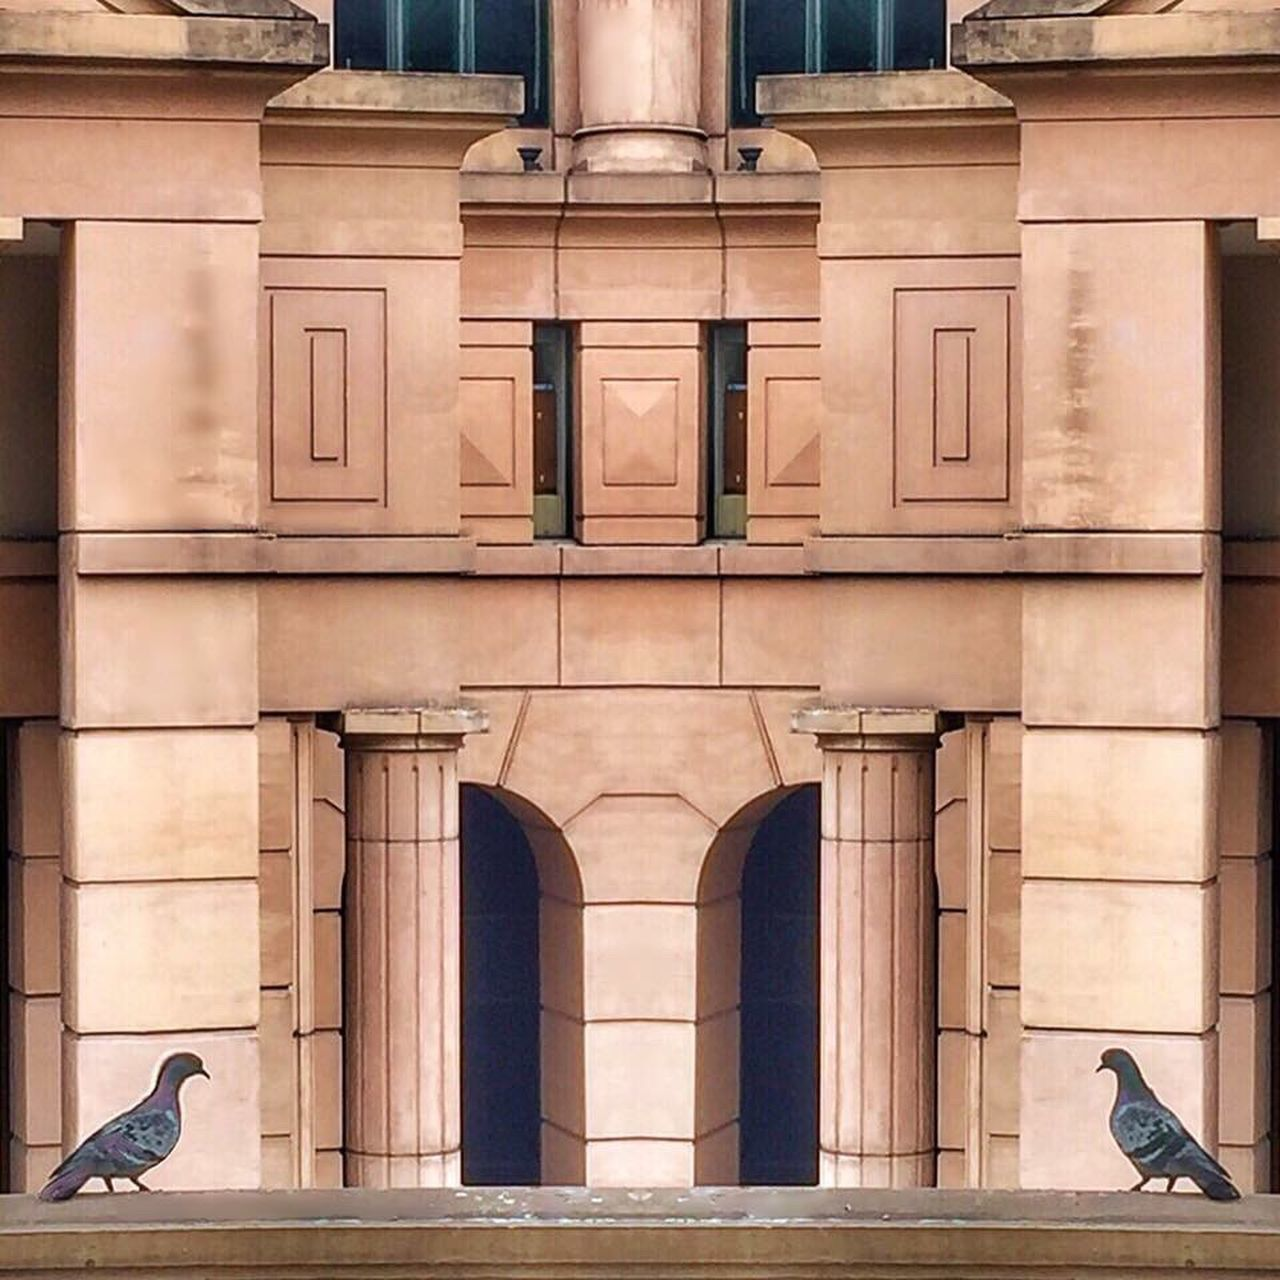 architecture, built structure, building exterior, outdoors, no people, day, bird